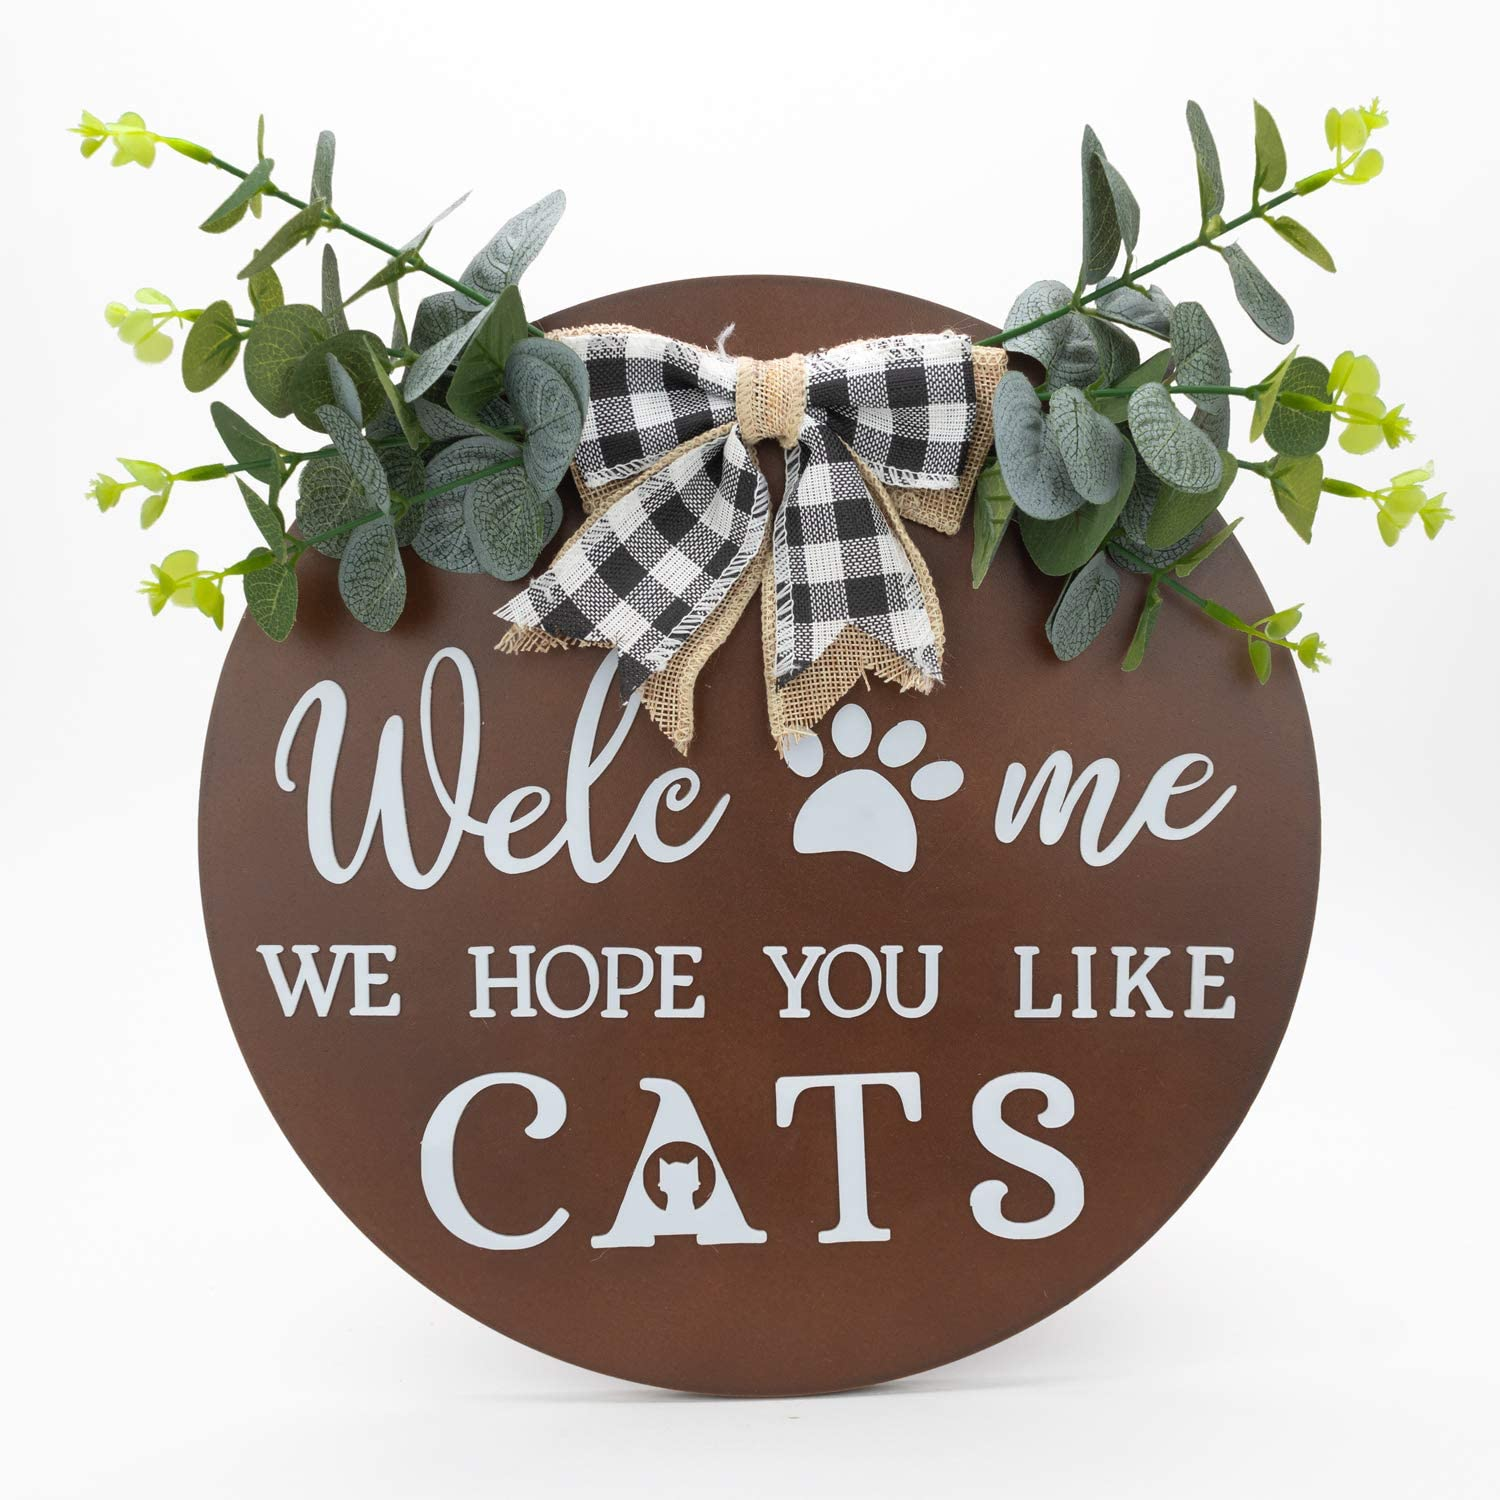 Jade Luxe Welcome Sign   Welcome Sign For Front Door   Welcome Signs For Front Porch   Front Porch Decor   Porch Decor   Door Wreaths For Front Door Outside   Welcome We Hope You Like Cats   US Brand